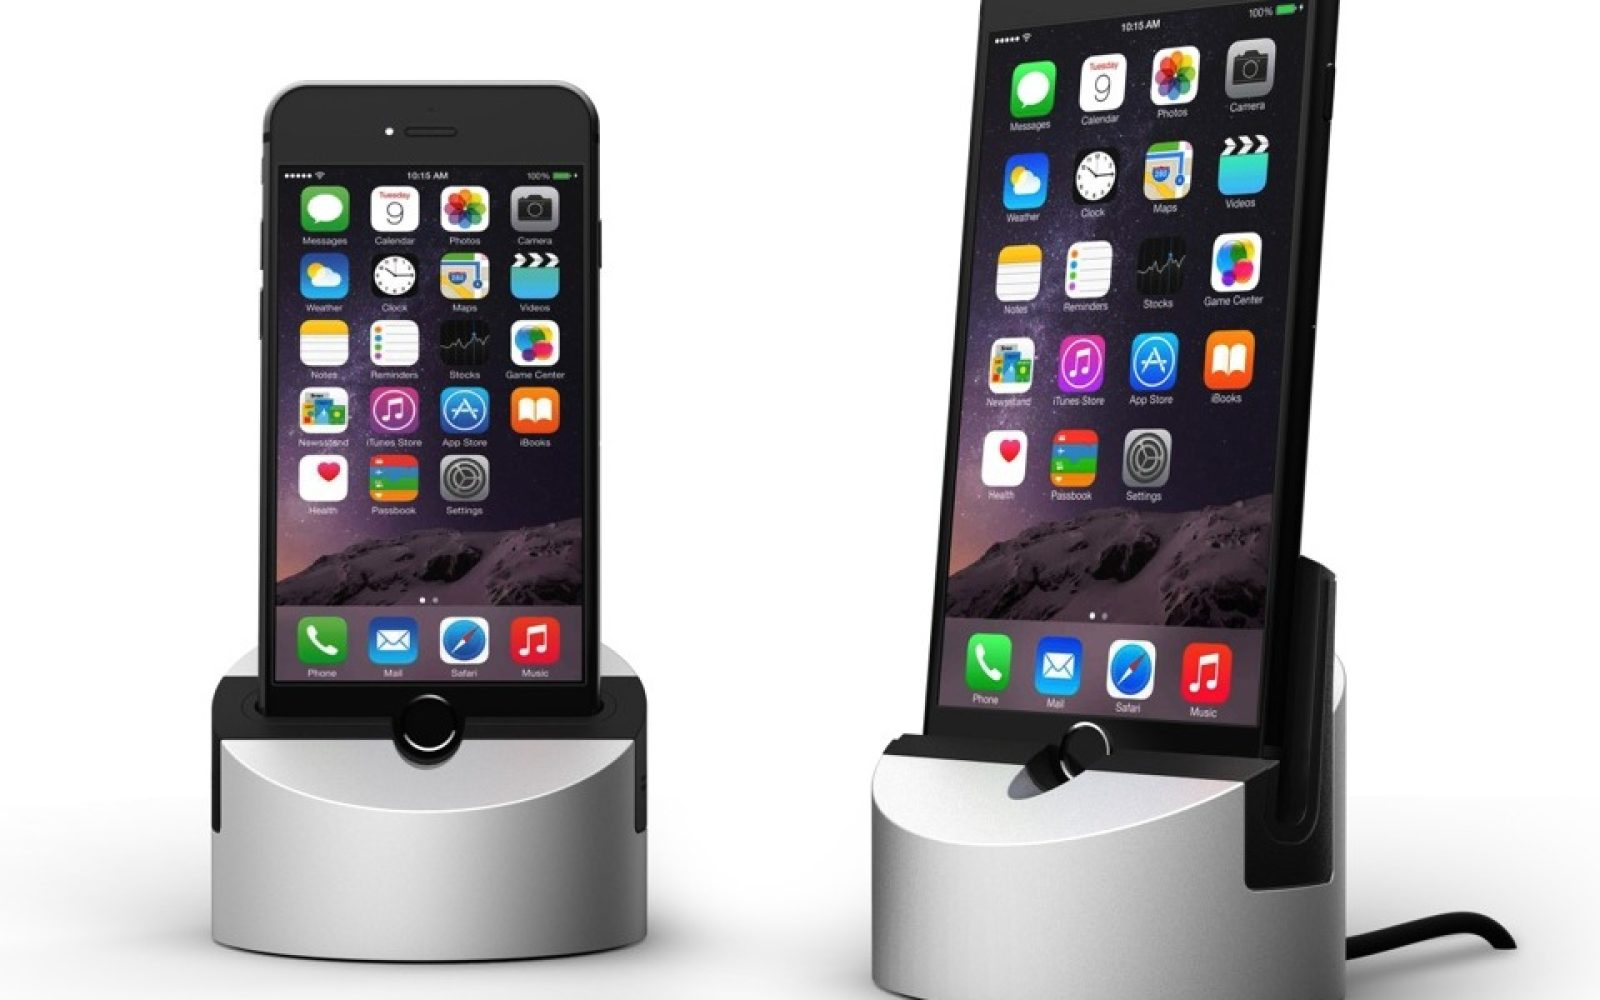 online retailer 9fa2b 13751 The best iPhone 6 and 6 Plus docks from Twelve South, Belkin, Henge ...